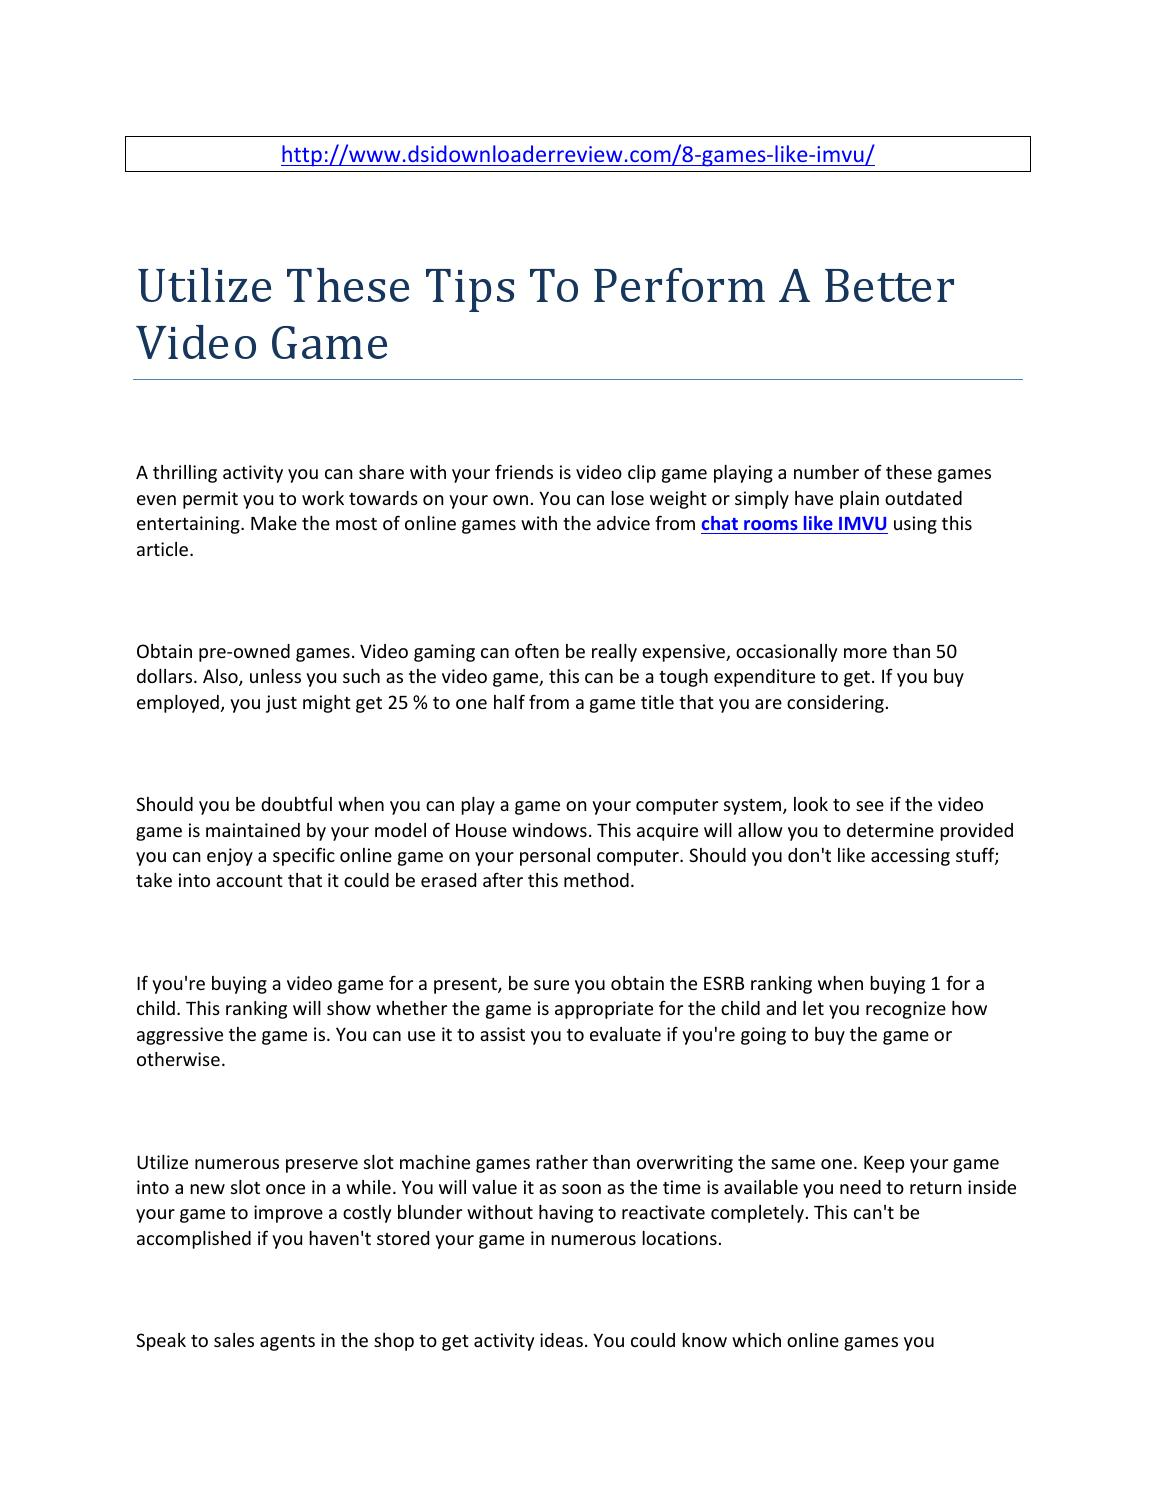 Utilize these tips to perform a better video game by